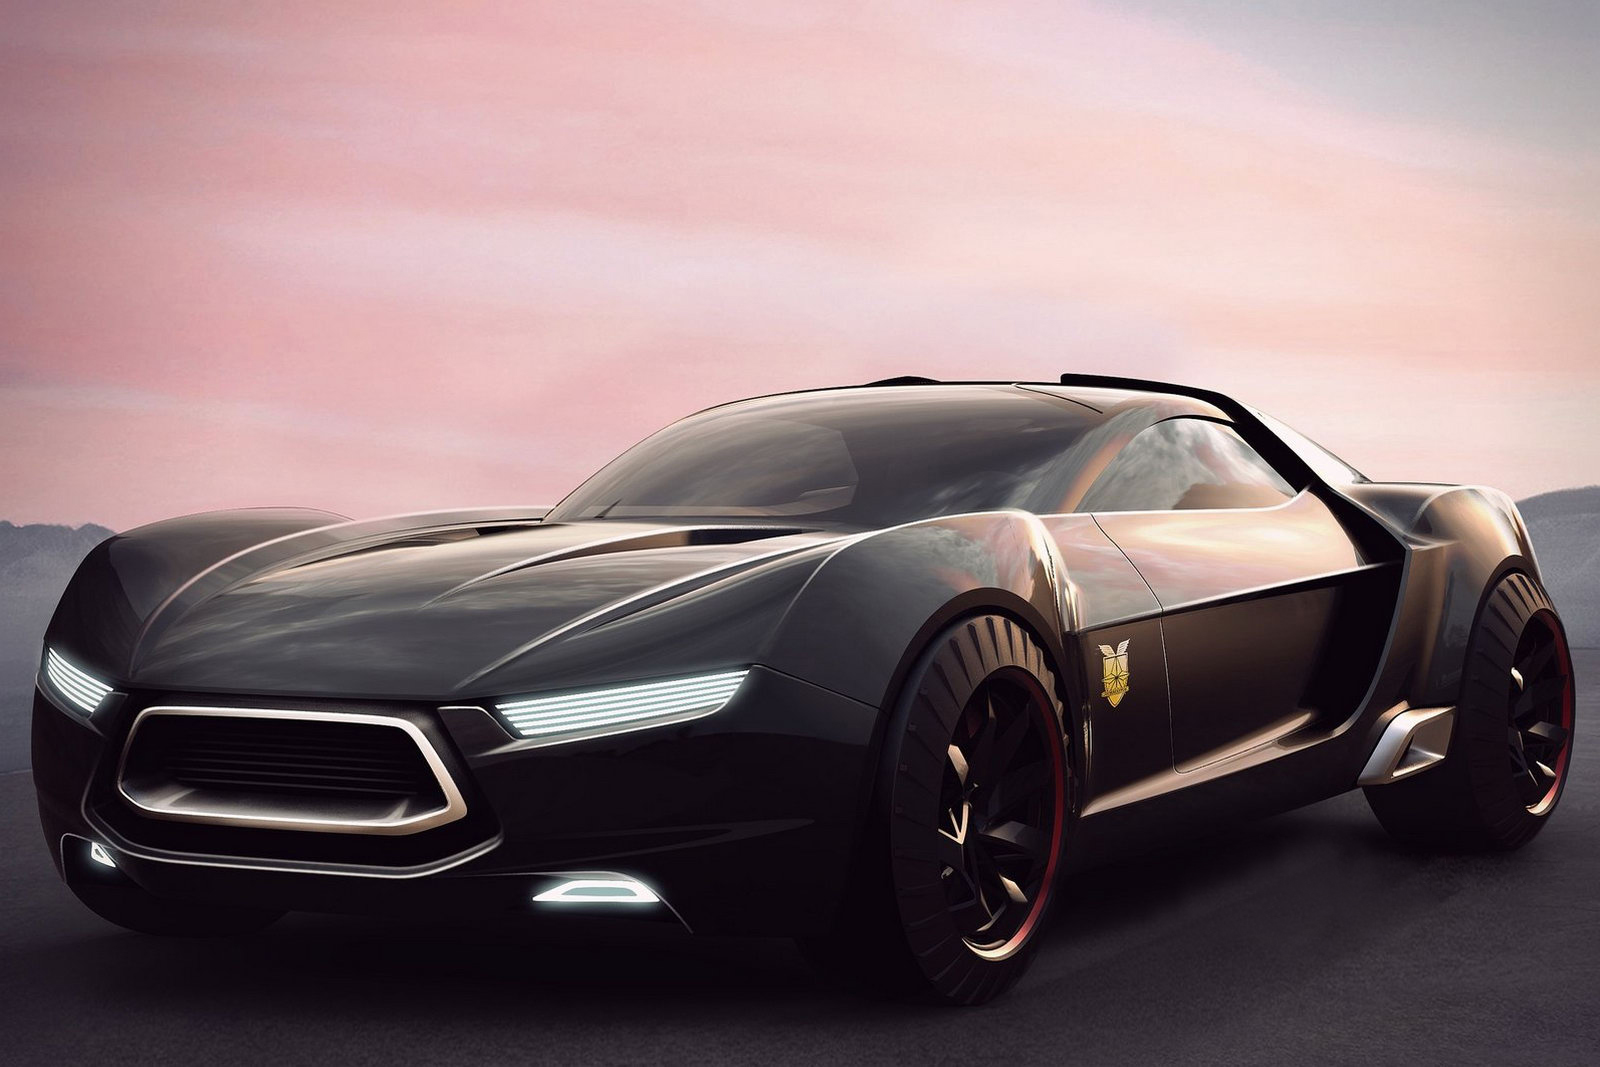 Ford Concept Int 3 Ford Released Snapshots of Revised XB Coupe Interceptor Car